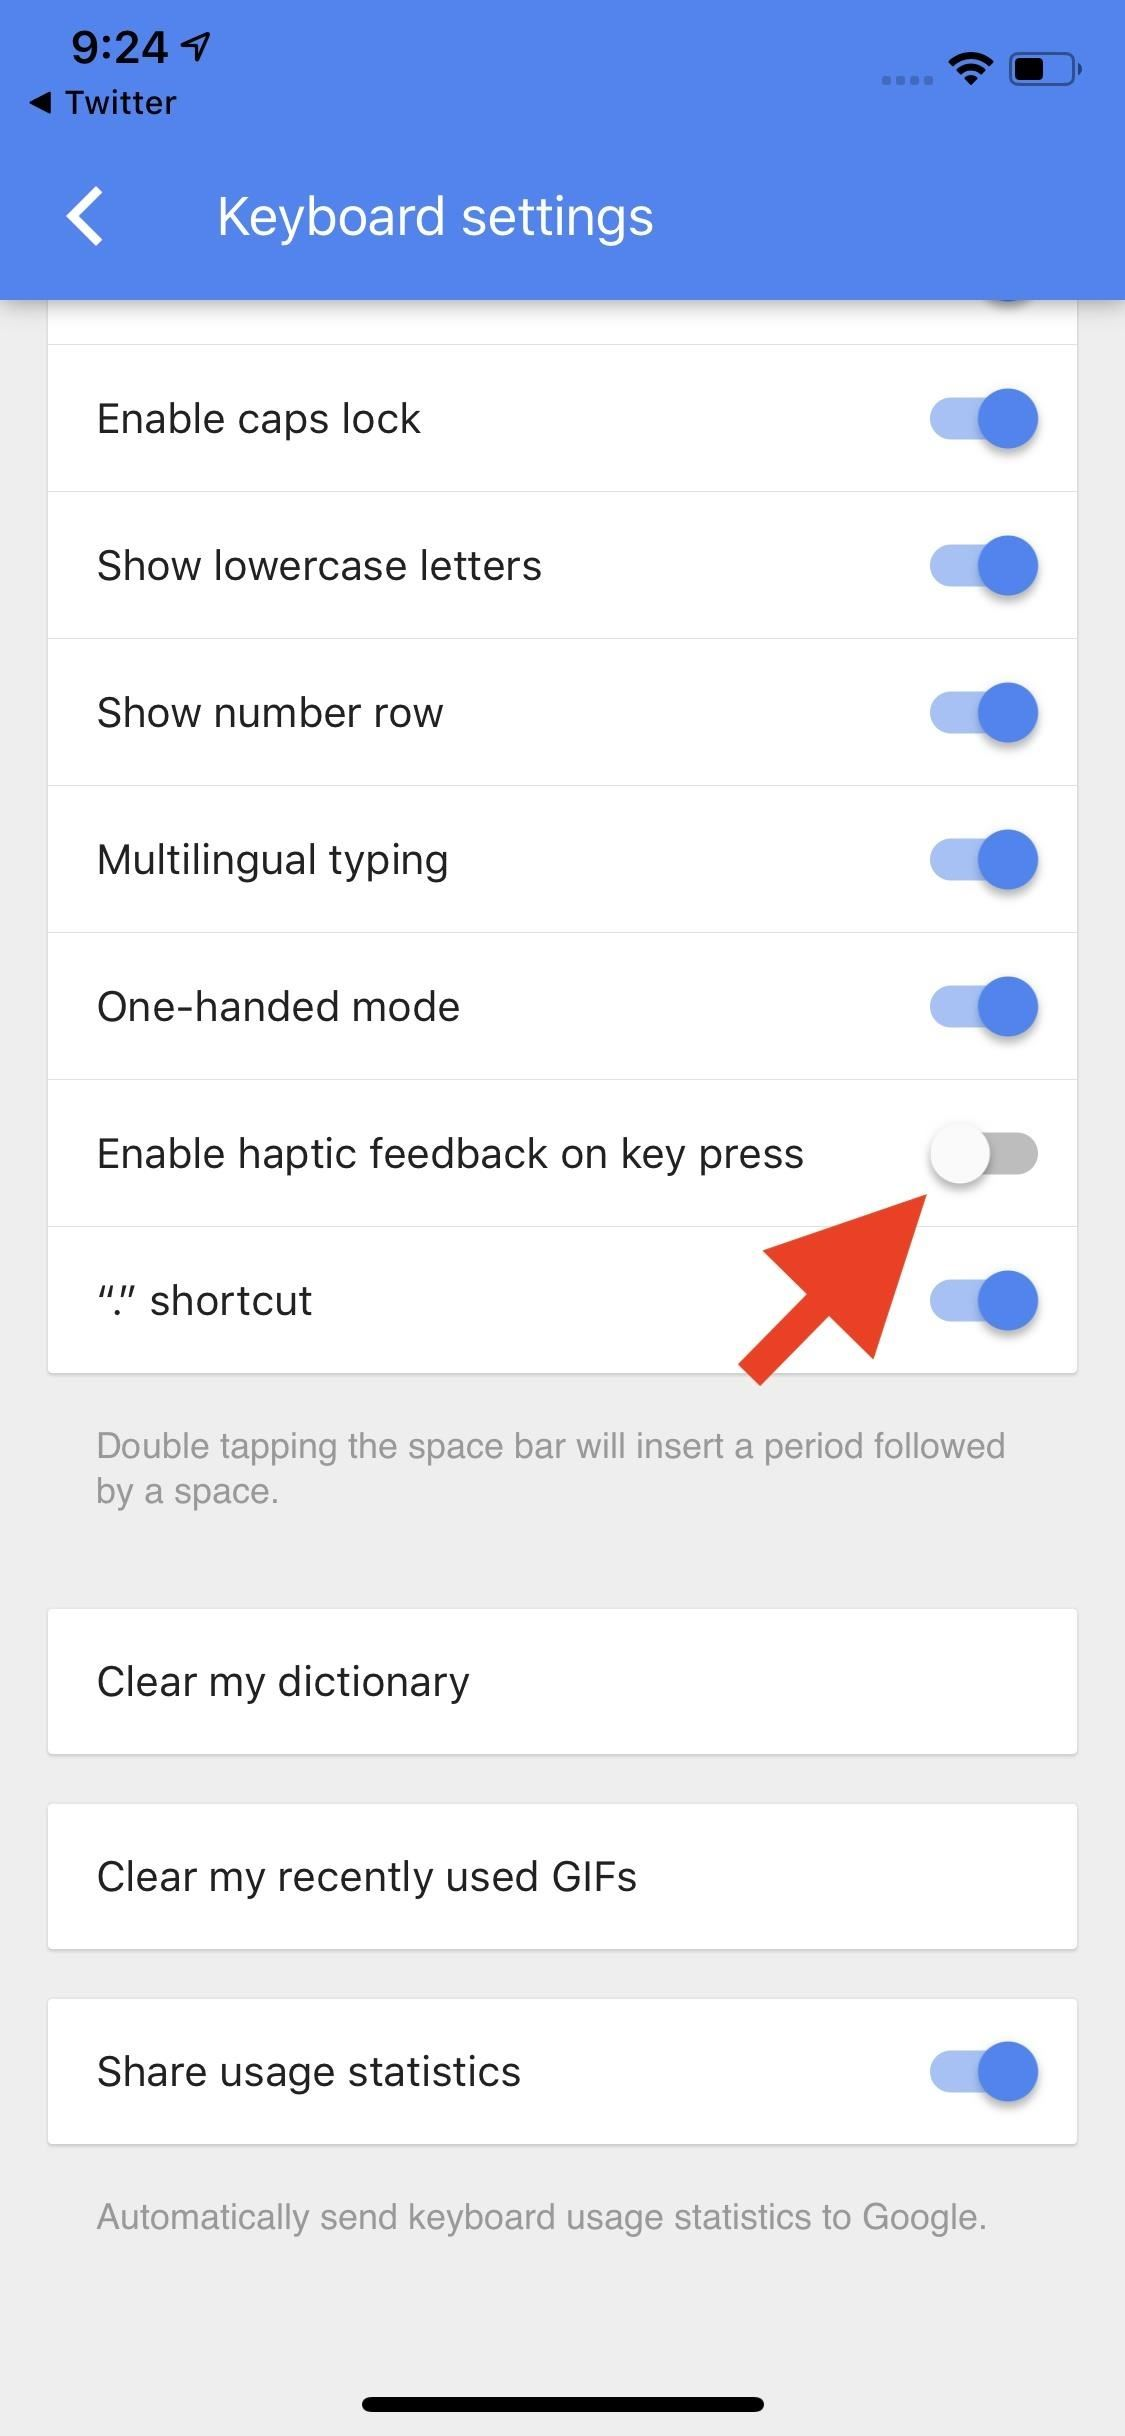 How to Get Haptic Feedback in Your iPhone Keyboard to Feel